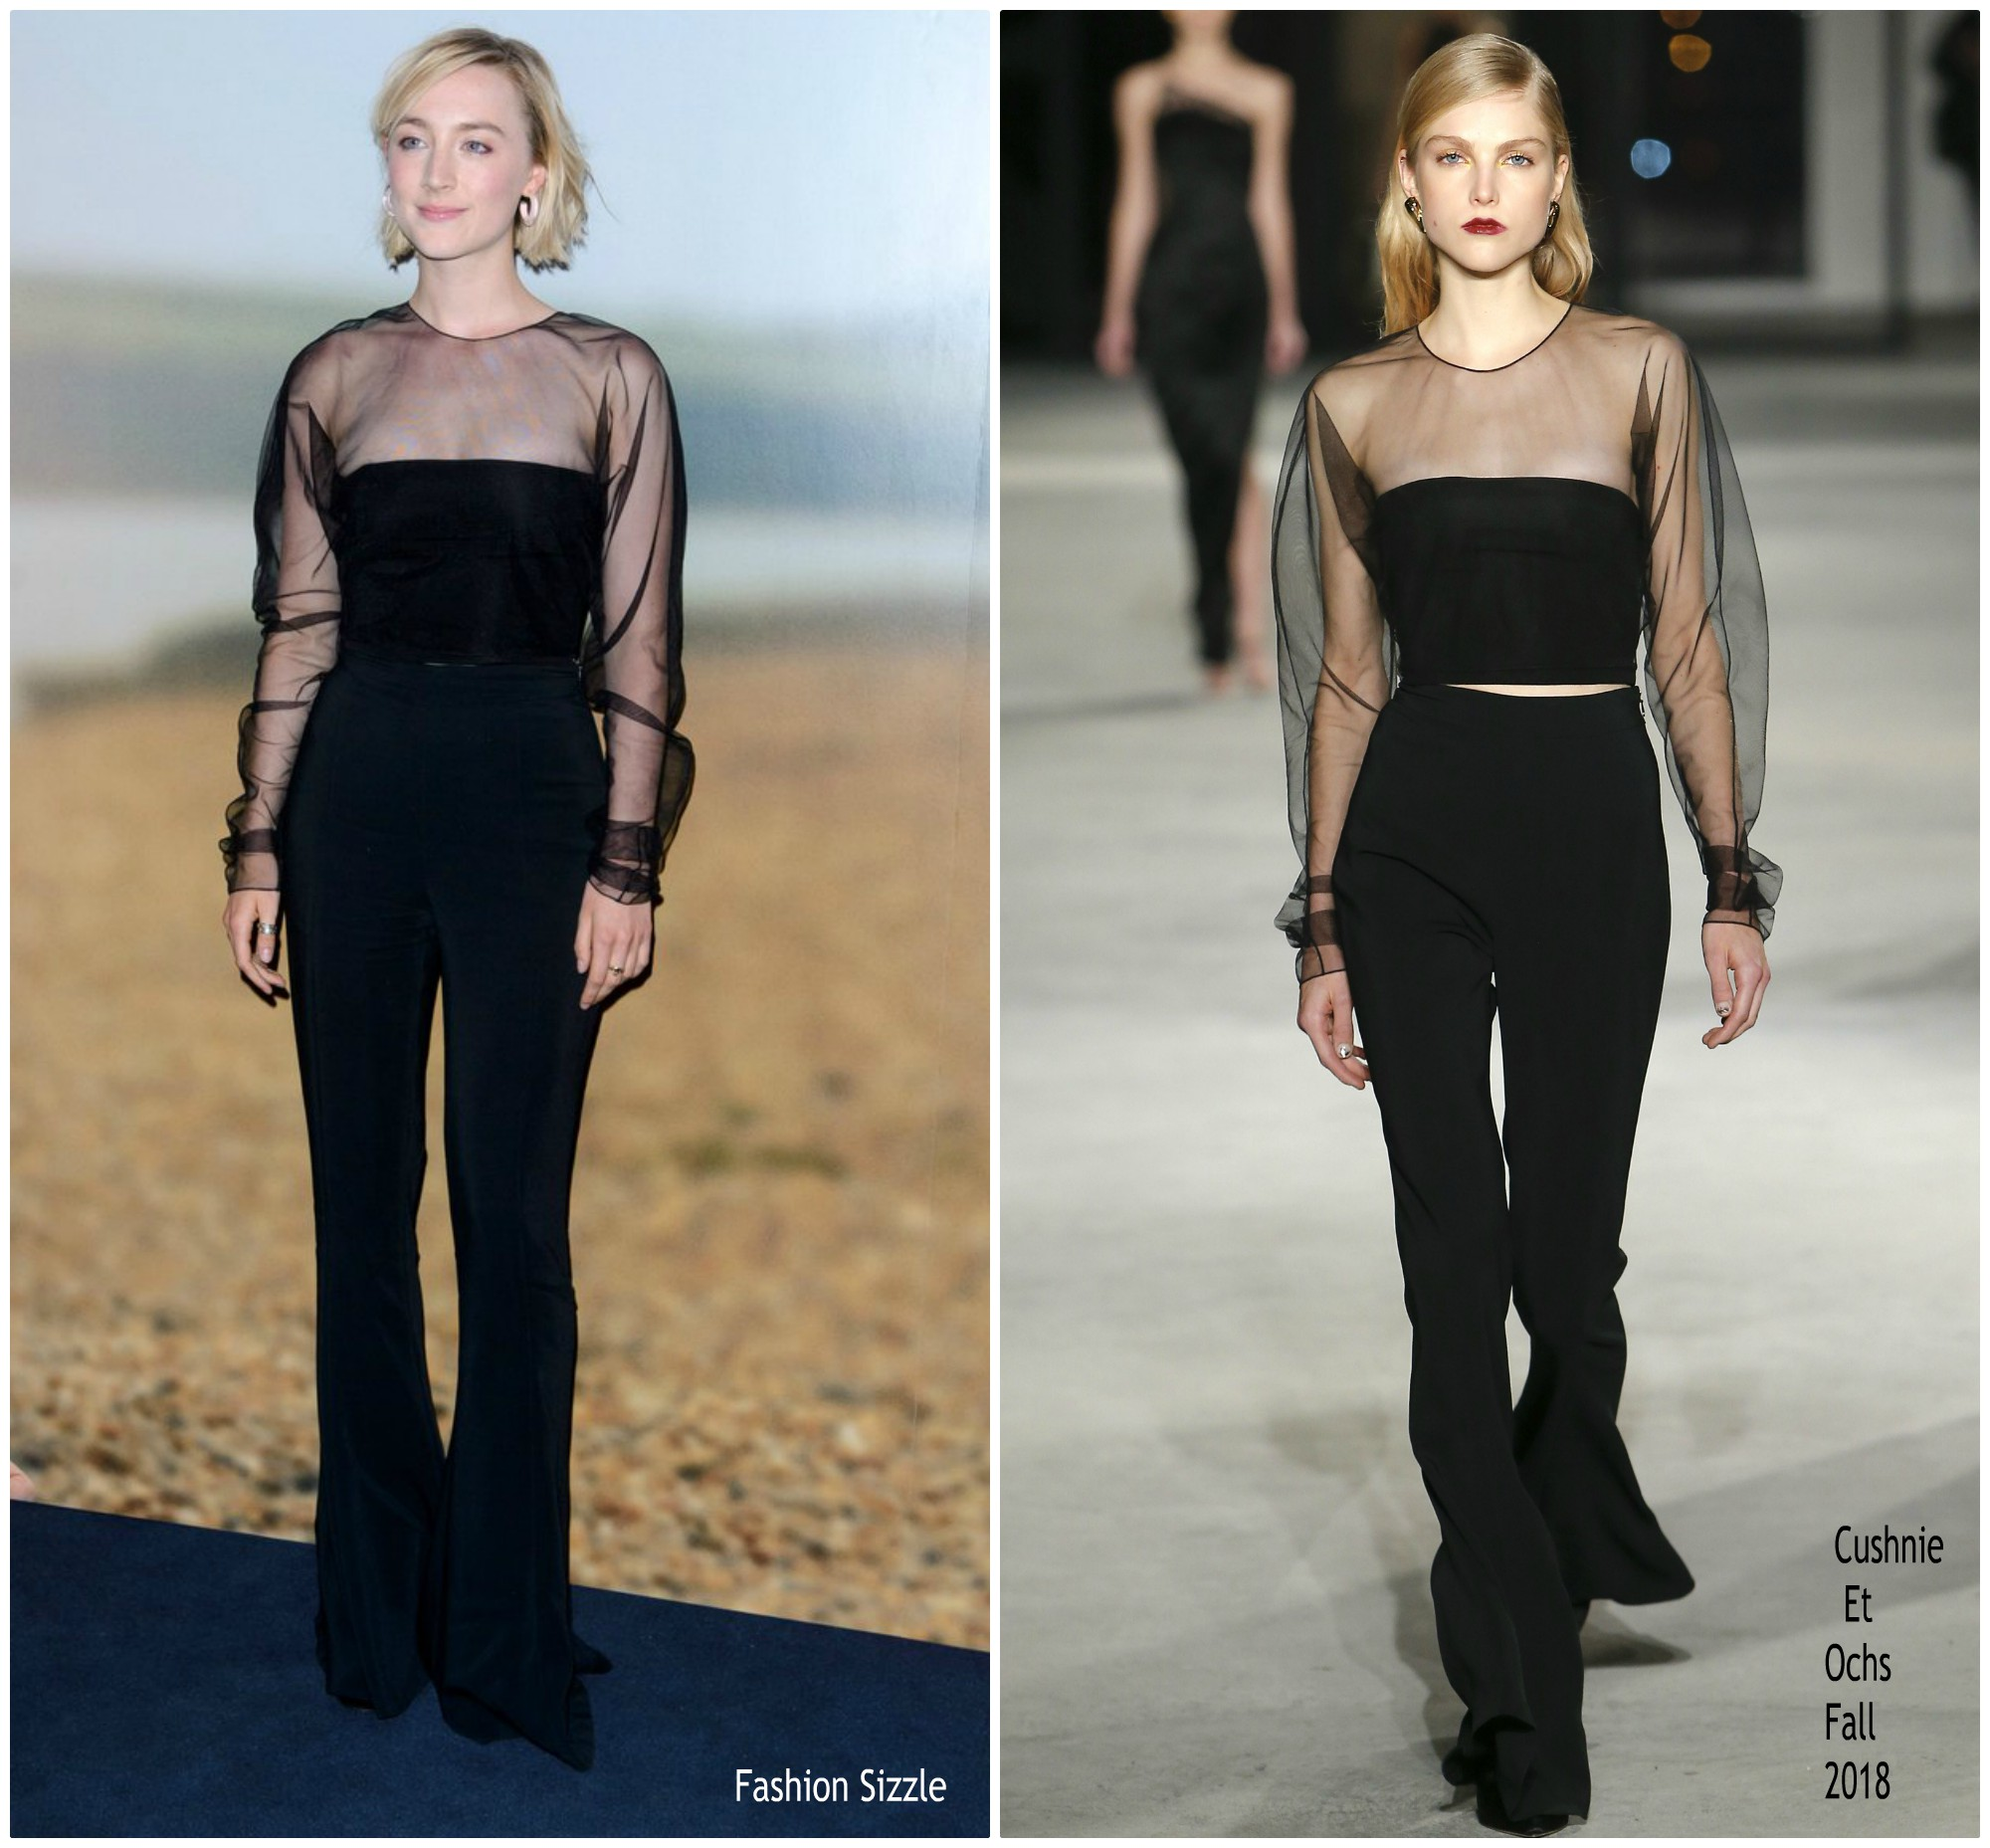 saoirse-ronan-in-cushnie-et-ochs-on-chesil-beach-special-screening